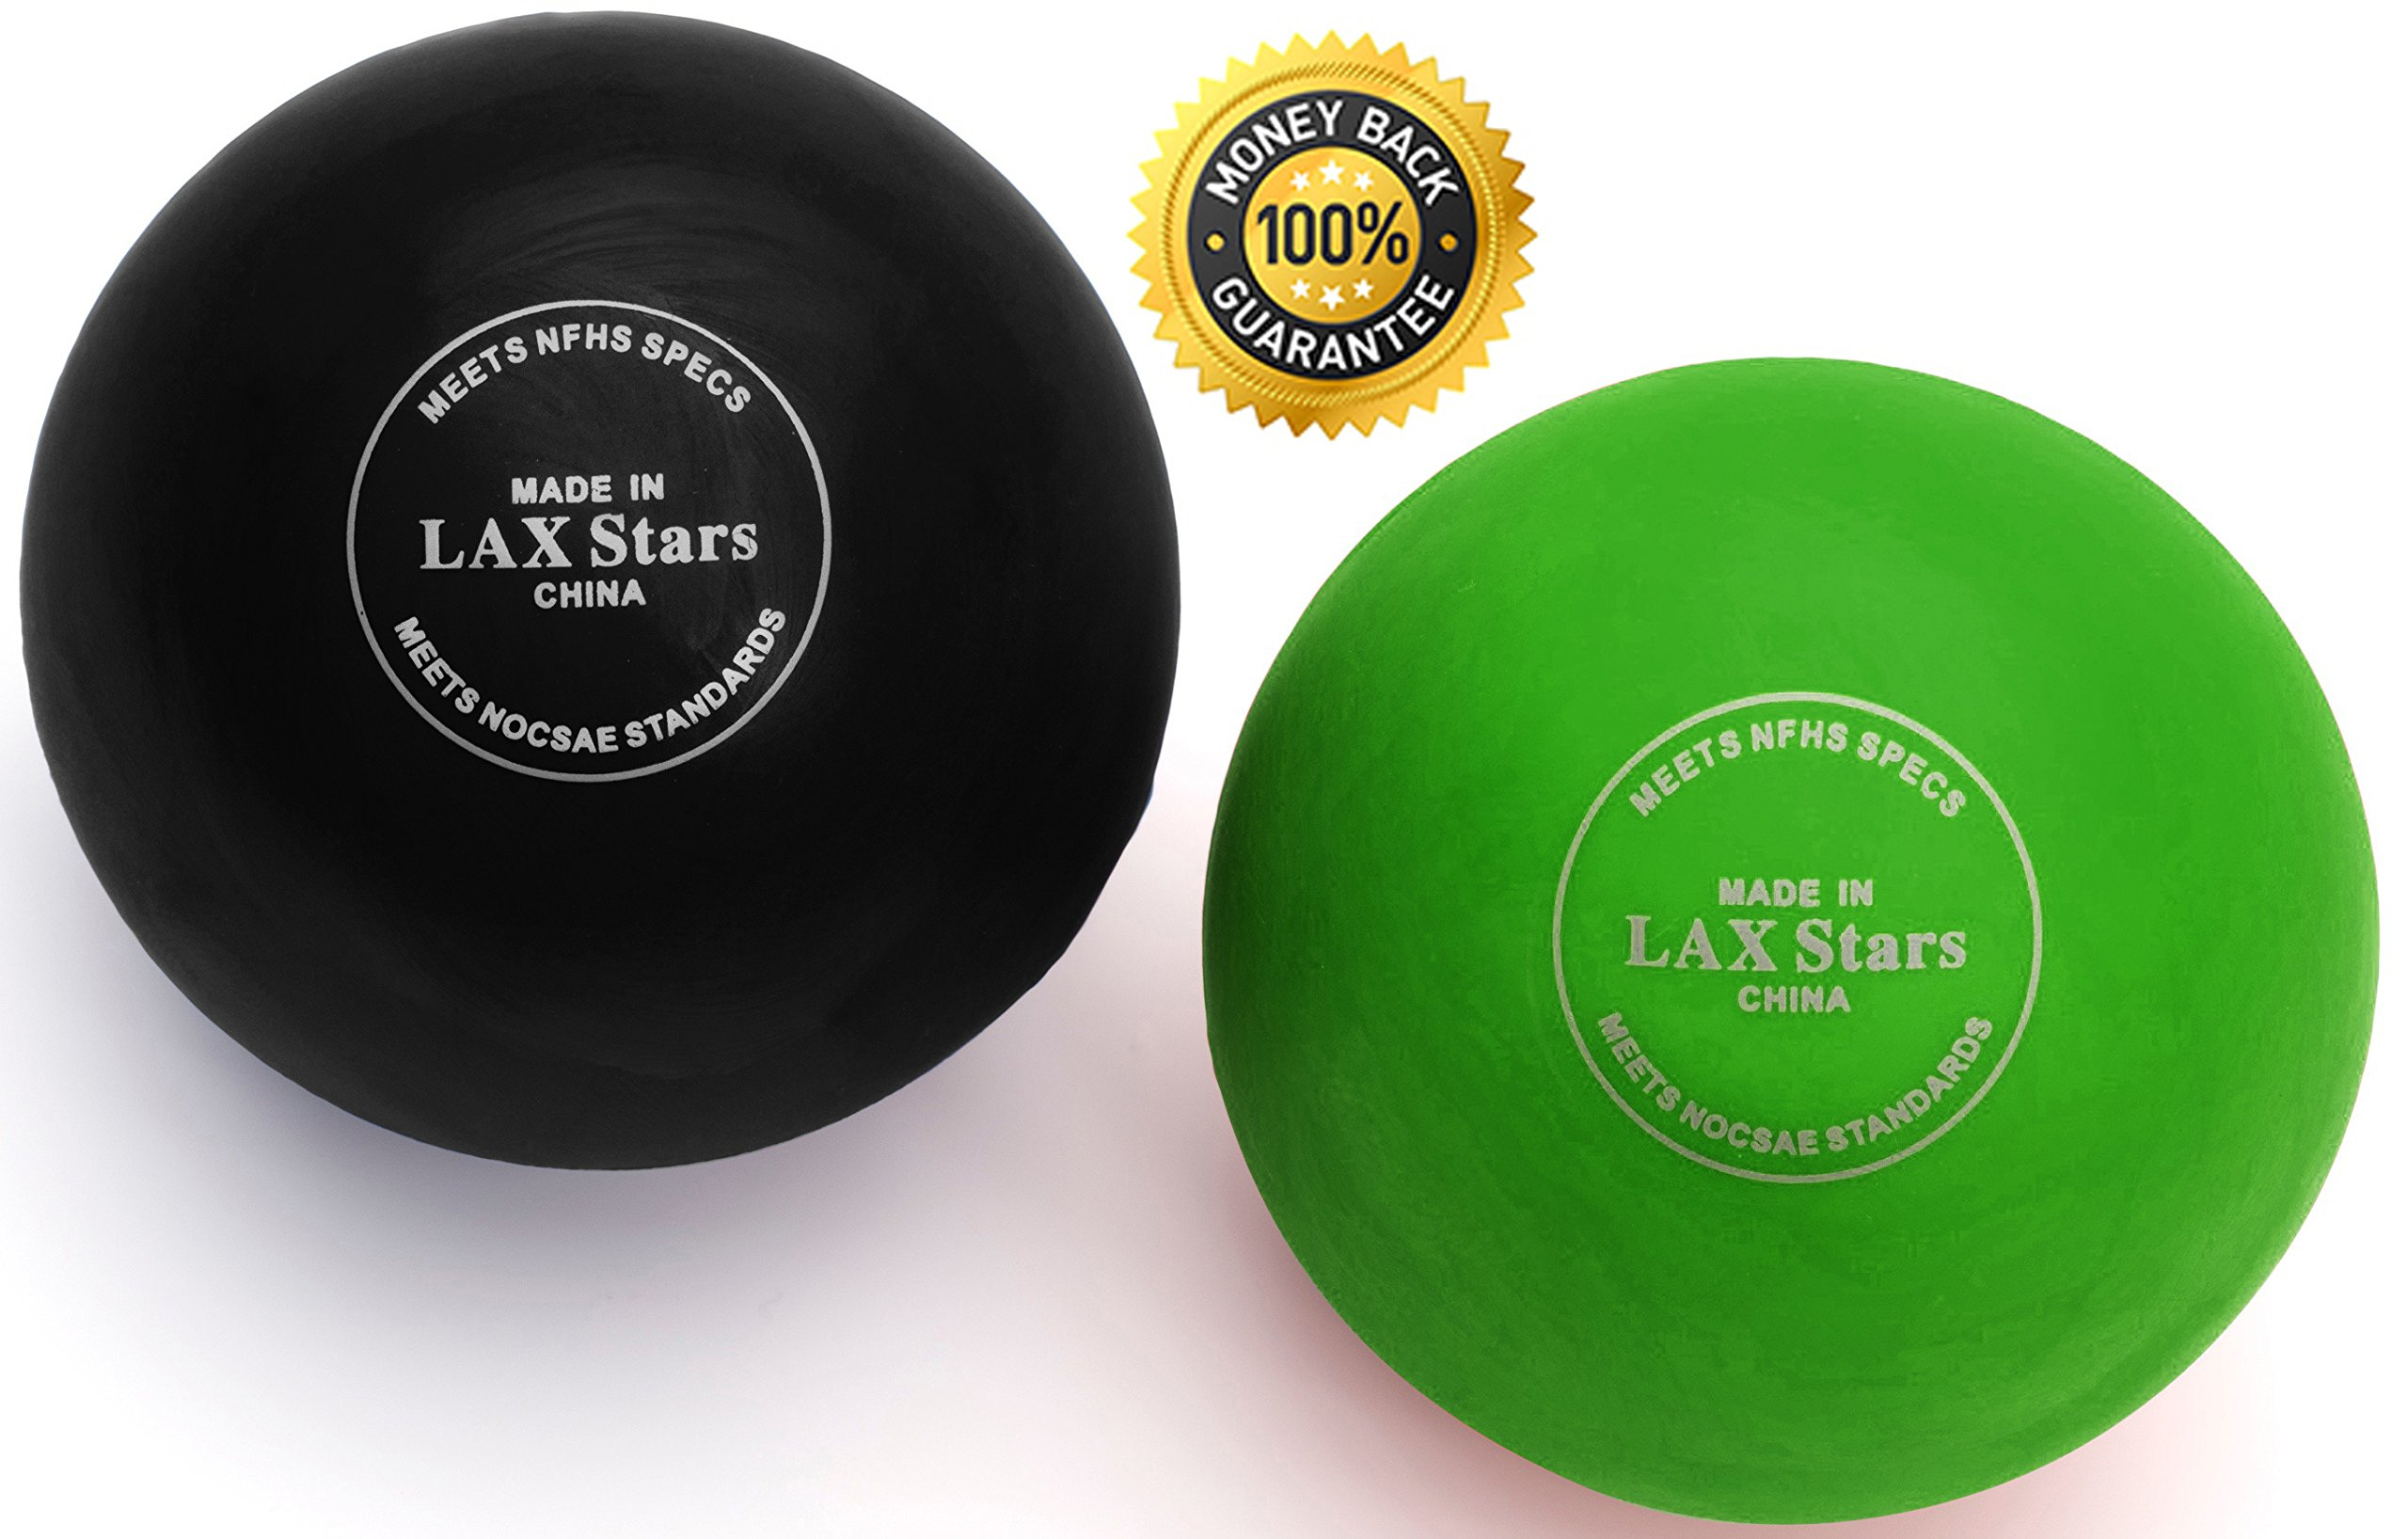 LAX Stars Lacrosse Balls By Myofascial Tension Release, Fascia Release, Massage Balls for Foot, Massage Balls for Back, Trigger Point Therapy Balls, Muscle Knots, Yoga, Pack of 2 Balls